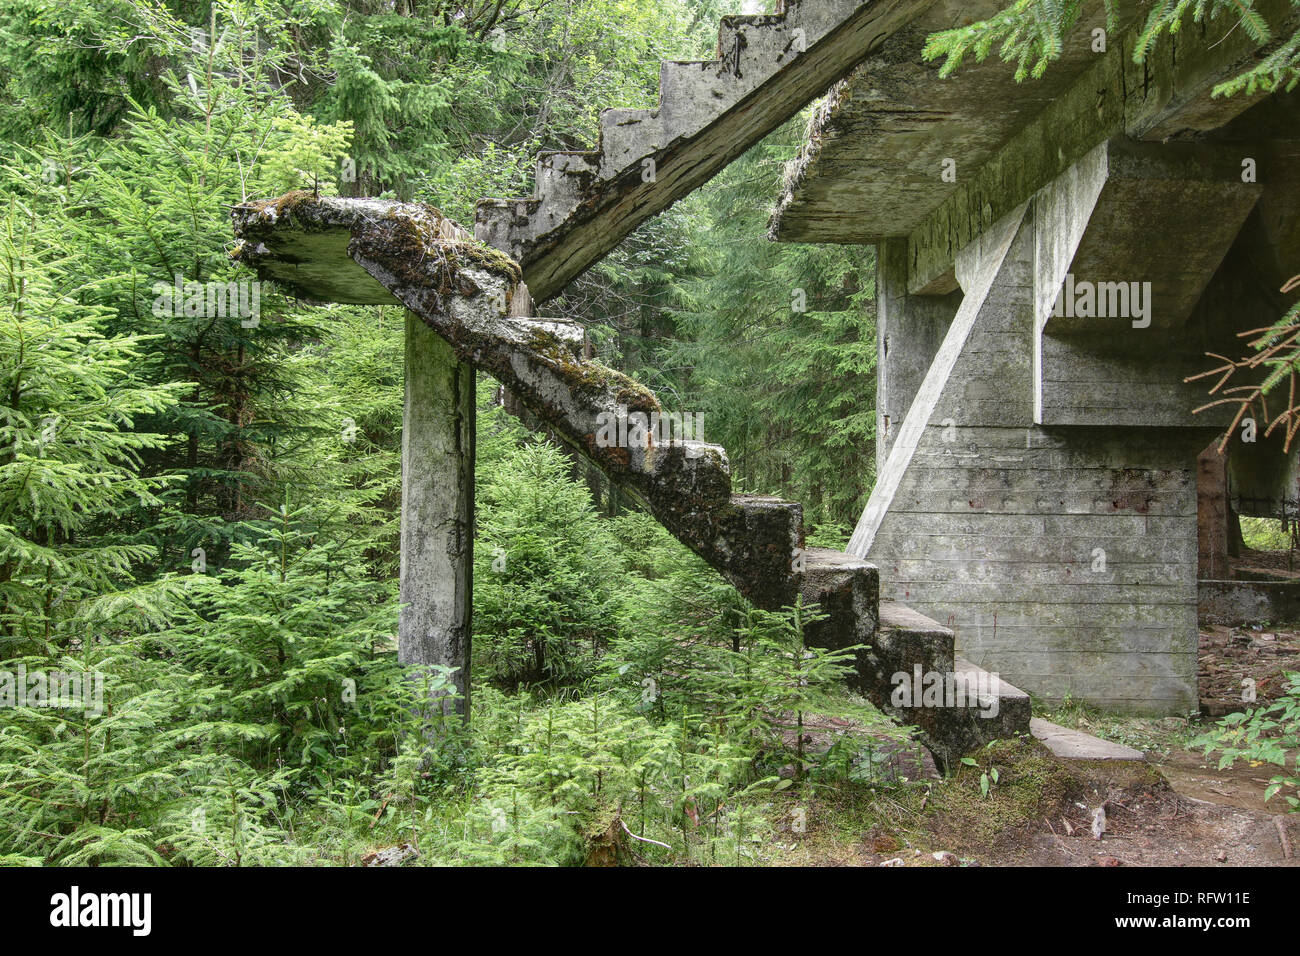 Abandoned ruins of the concrete staircase in the forest - Stock Image